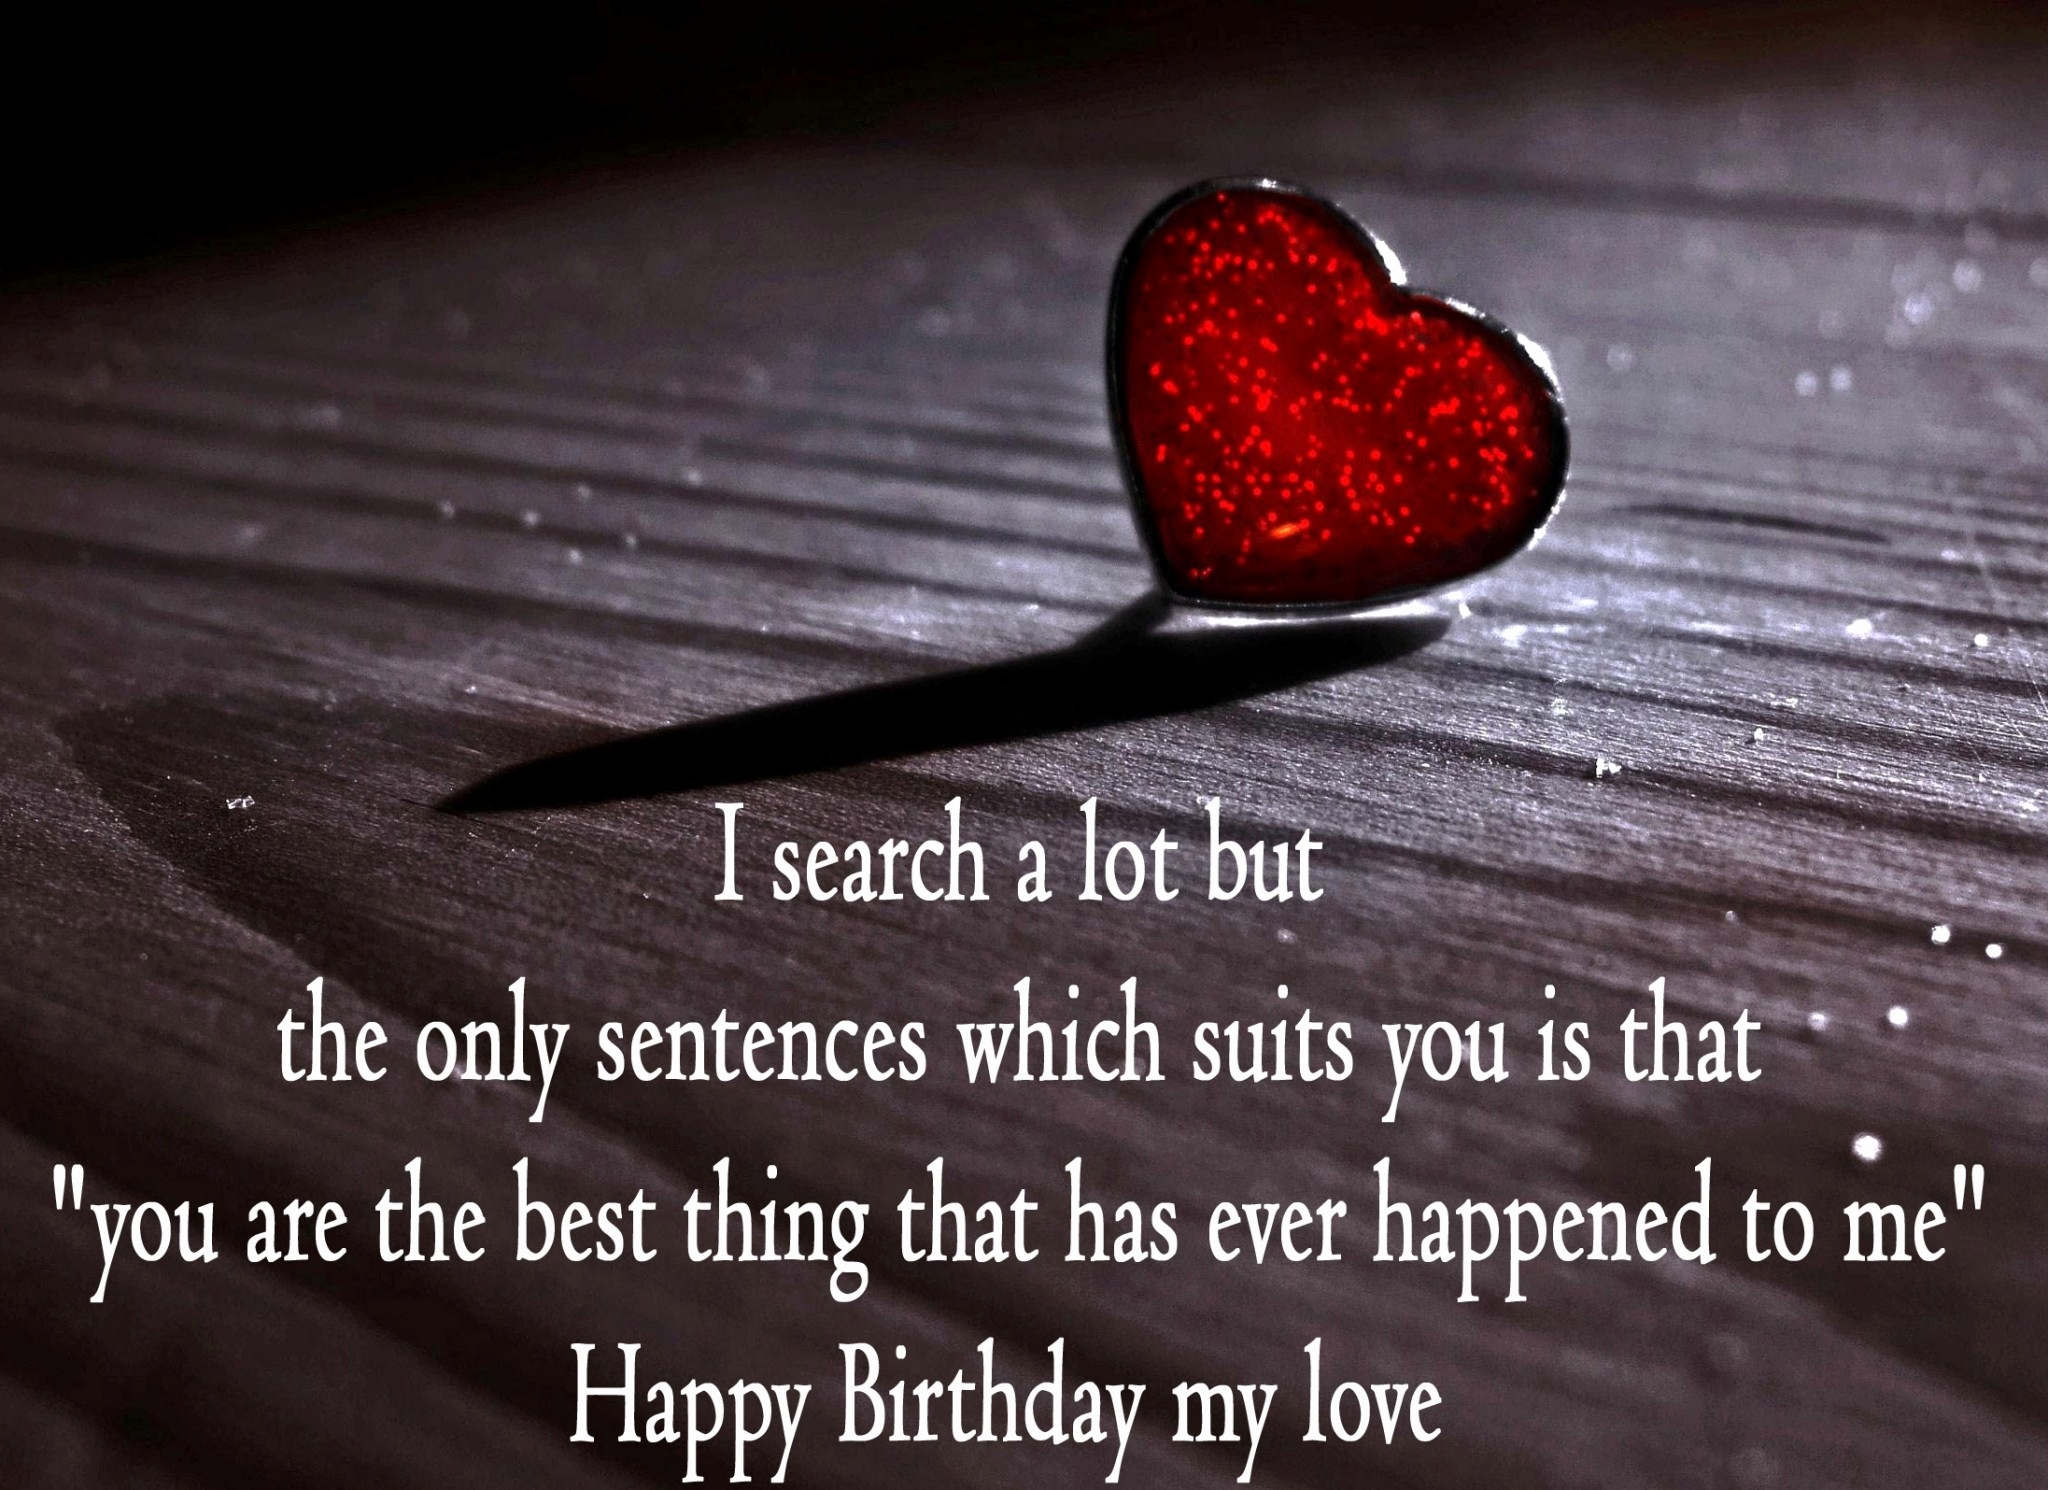 birthday card for ex girlfriend ; sending-a-birthday-card-to-your-ex-unique-birthday-wishes-for-girlfriend-birthday-wishes-for-girlfriend-of-sending-a-birthday-card-to-your-ex